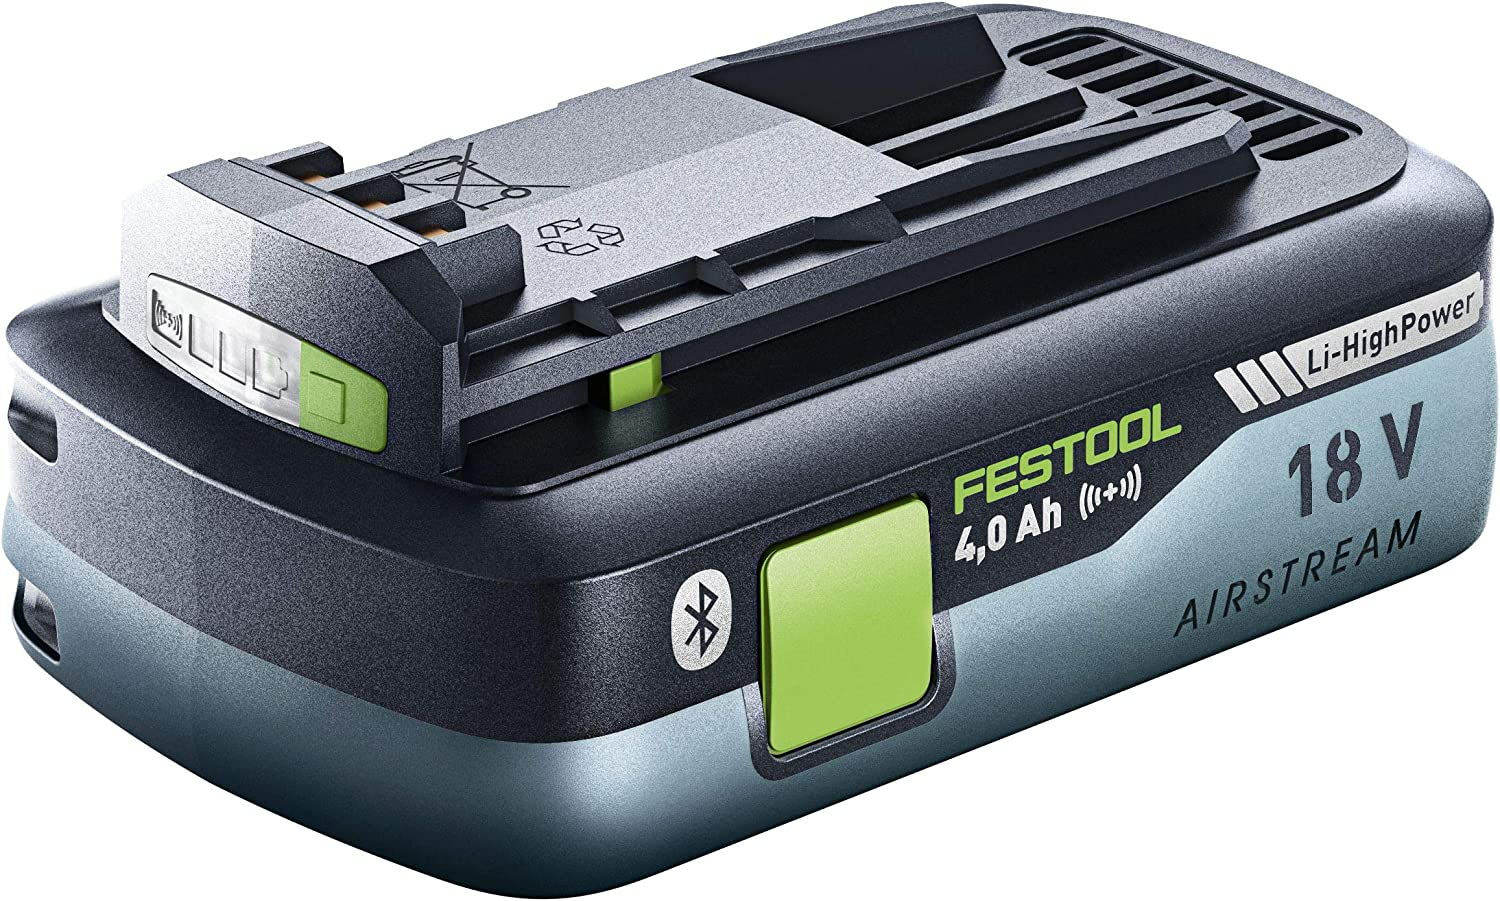 Festool - High Power 4.0AH Battery Bluet Airstream Pack 即納 with セールSALE%OFF and